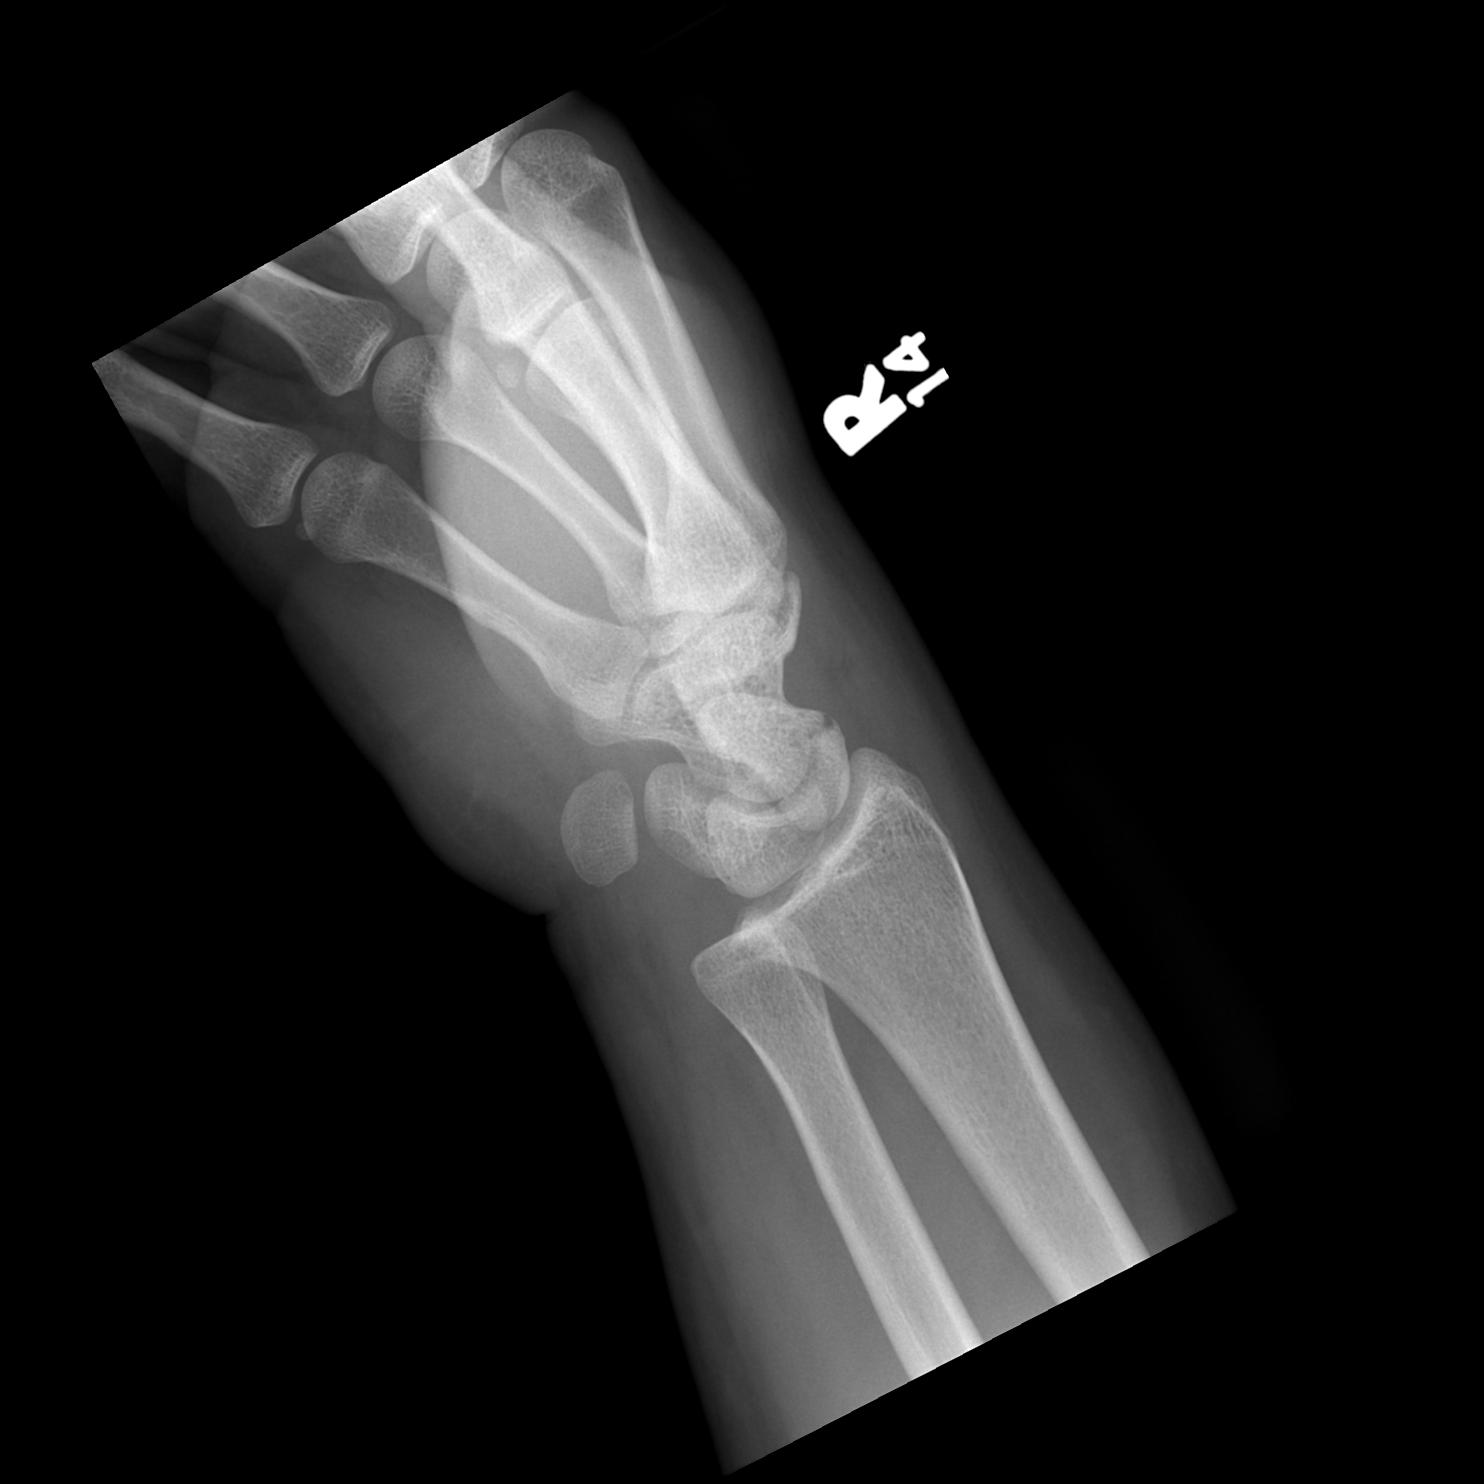 smith fracture x ray - HD1484×1484